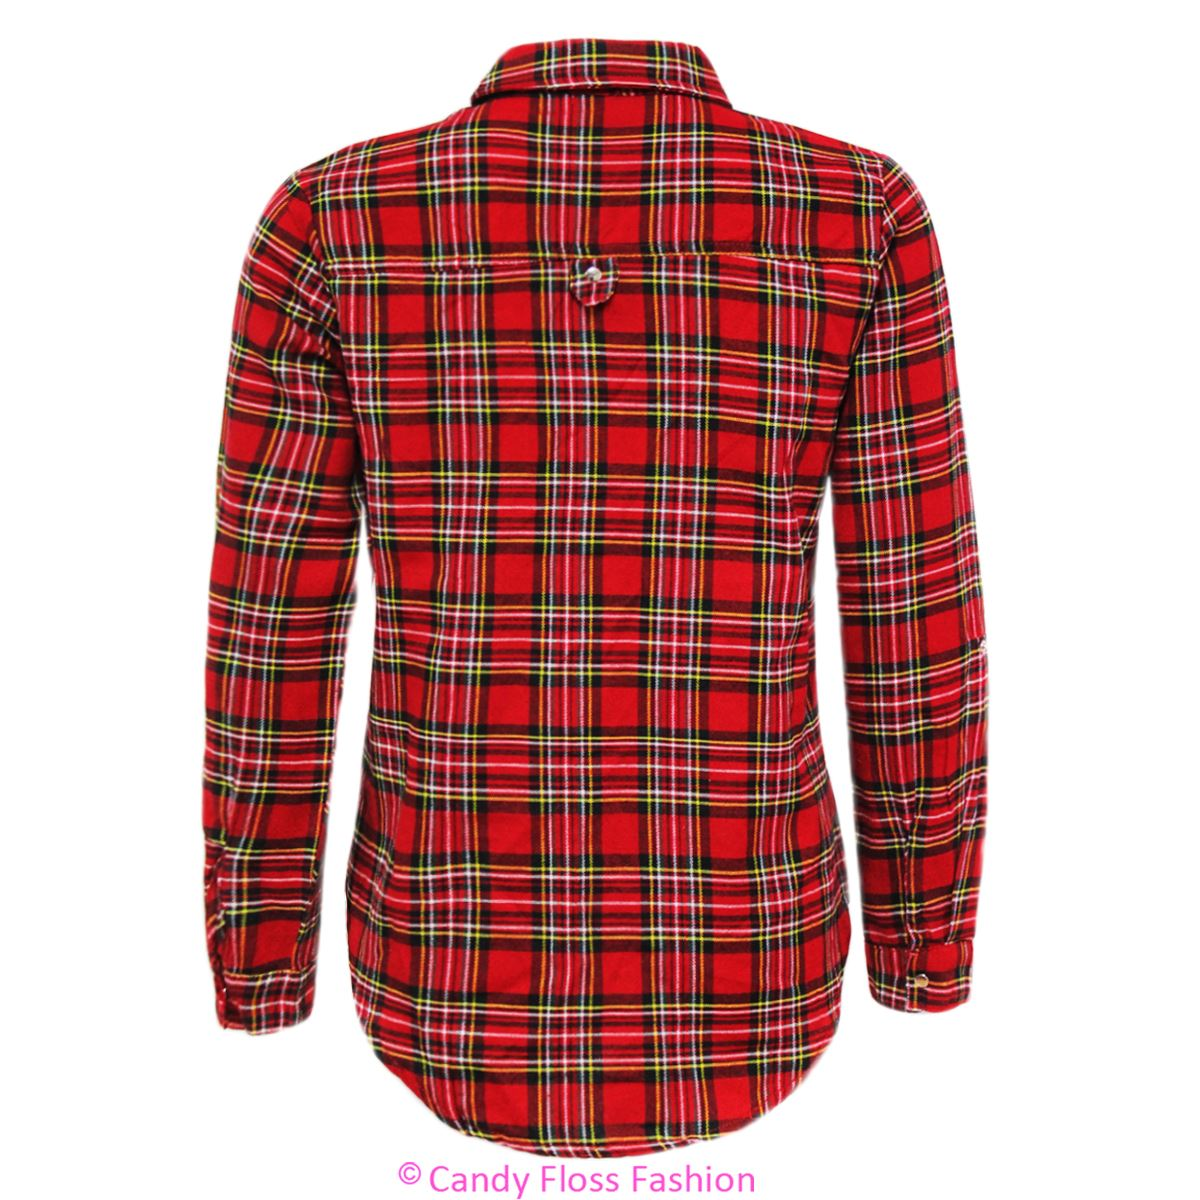 Find great deals on eBay for womens tartan plaid shirt. Shop with confidence.